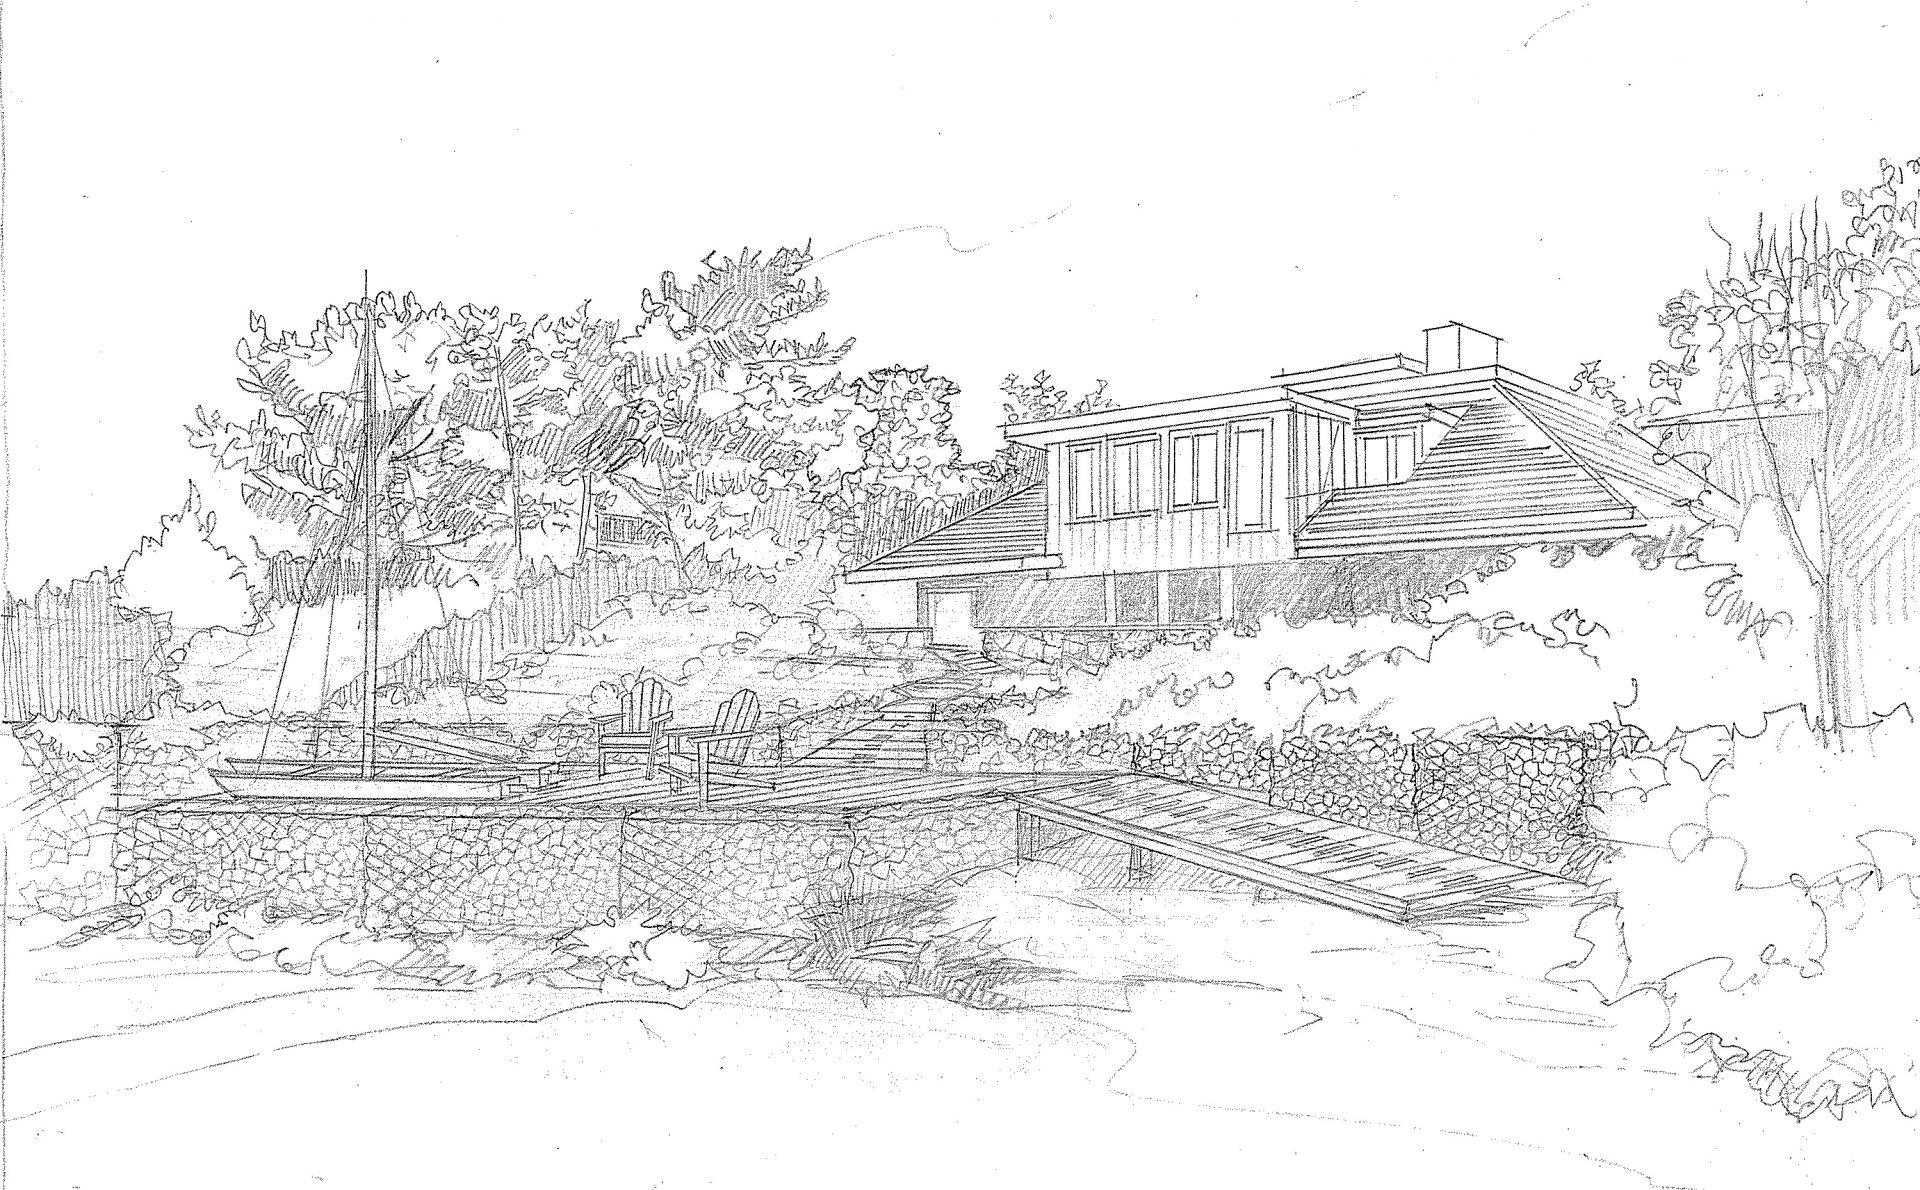 beachfront-pool-landscape-design-concept-drawing-cape-may-nj